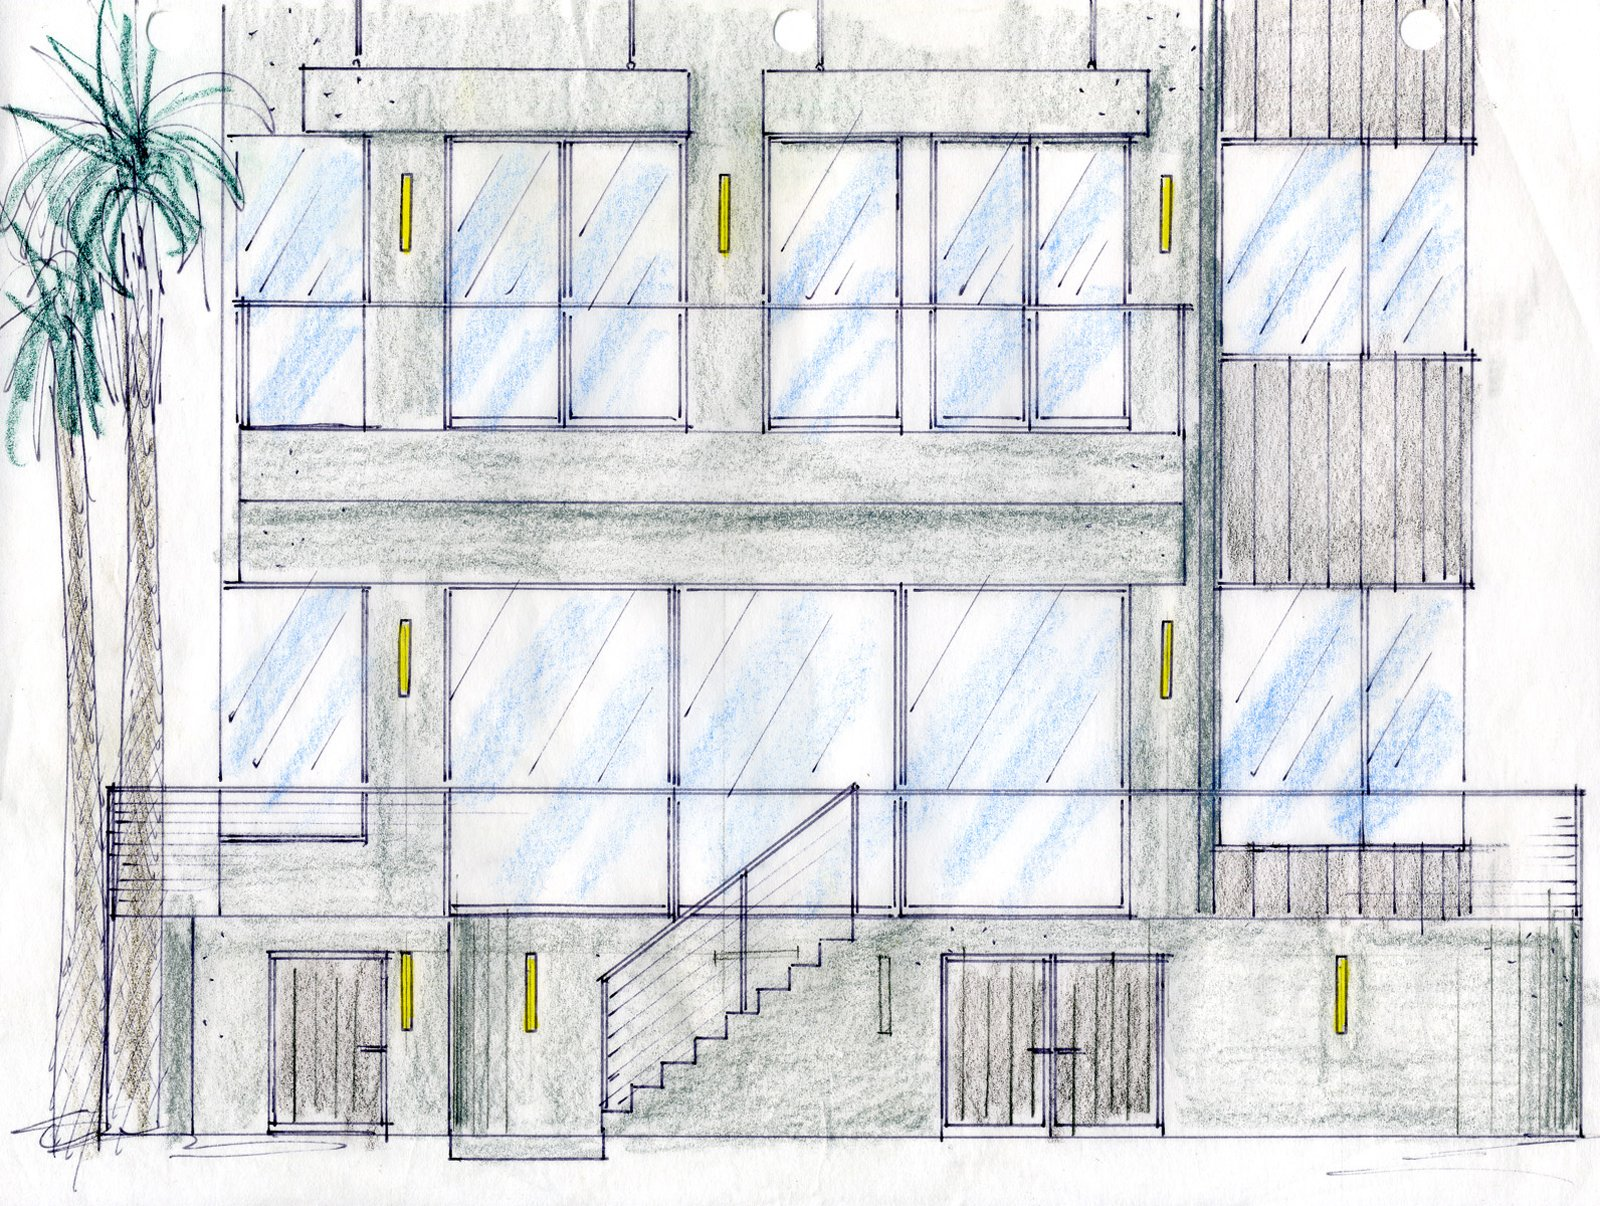 An original sketch of the couple's residence by project designer John A. Turturro of Turturro Design Studios and architect of record Larry Graves of Alliance Design Group.